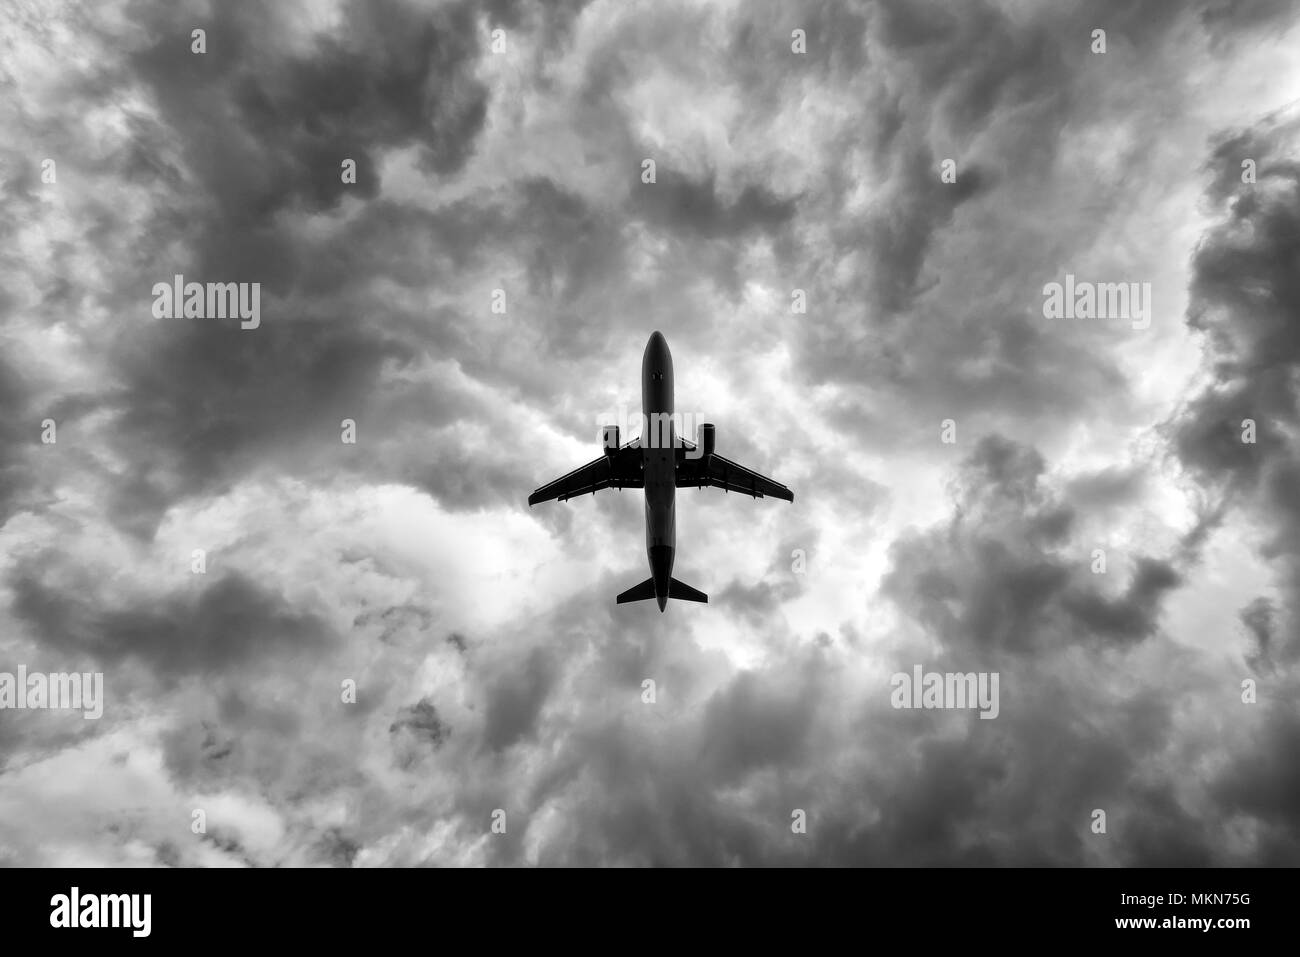 under a big jet plane taking off, black and white - Stock Image